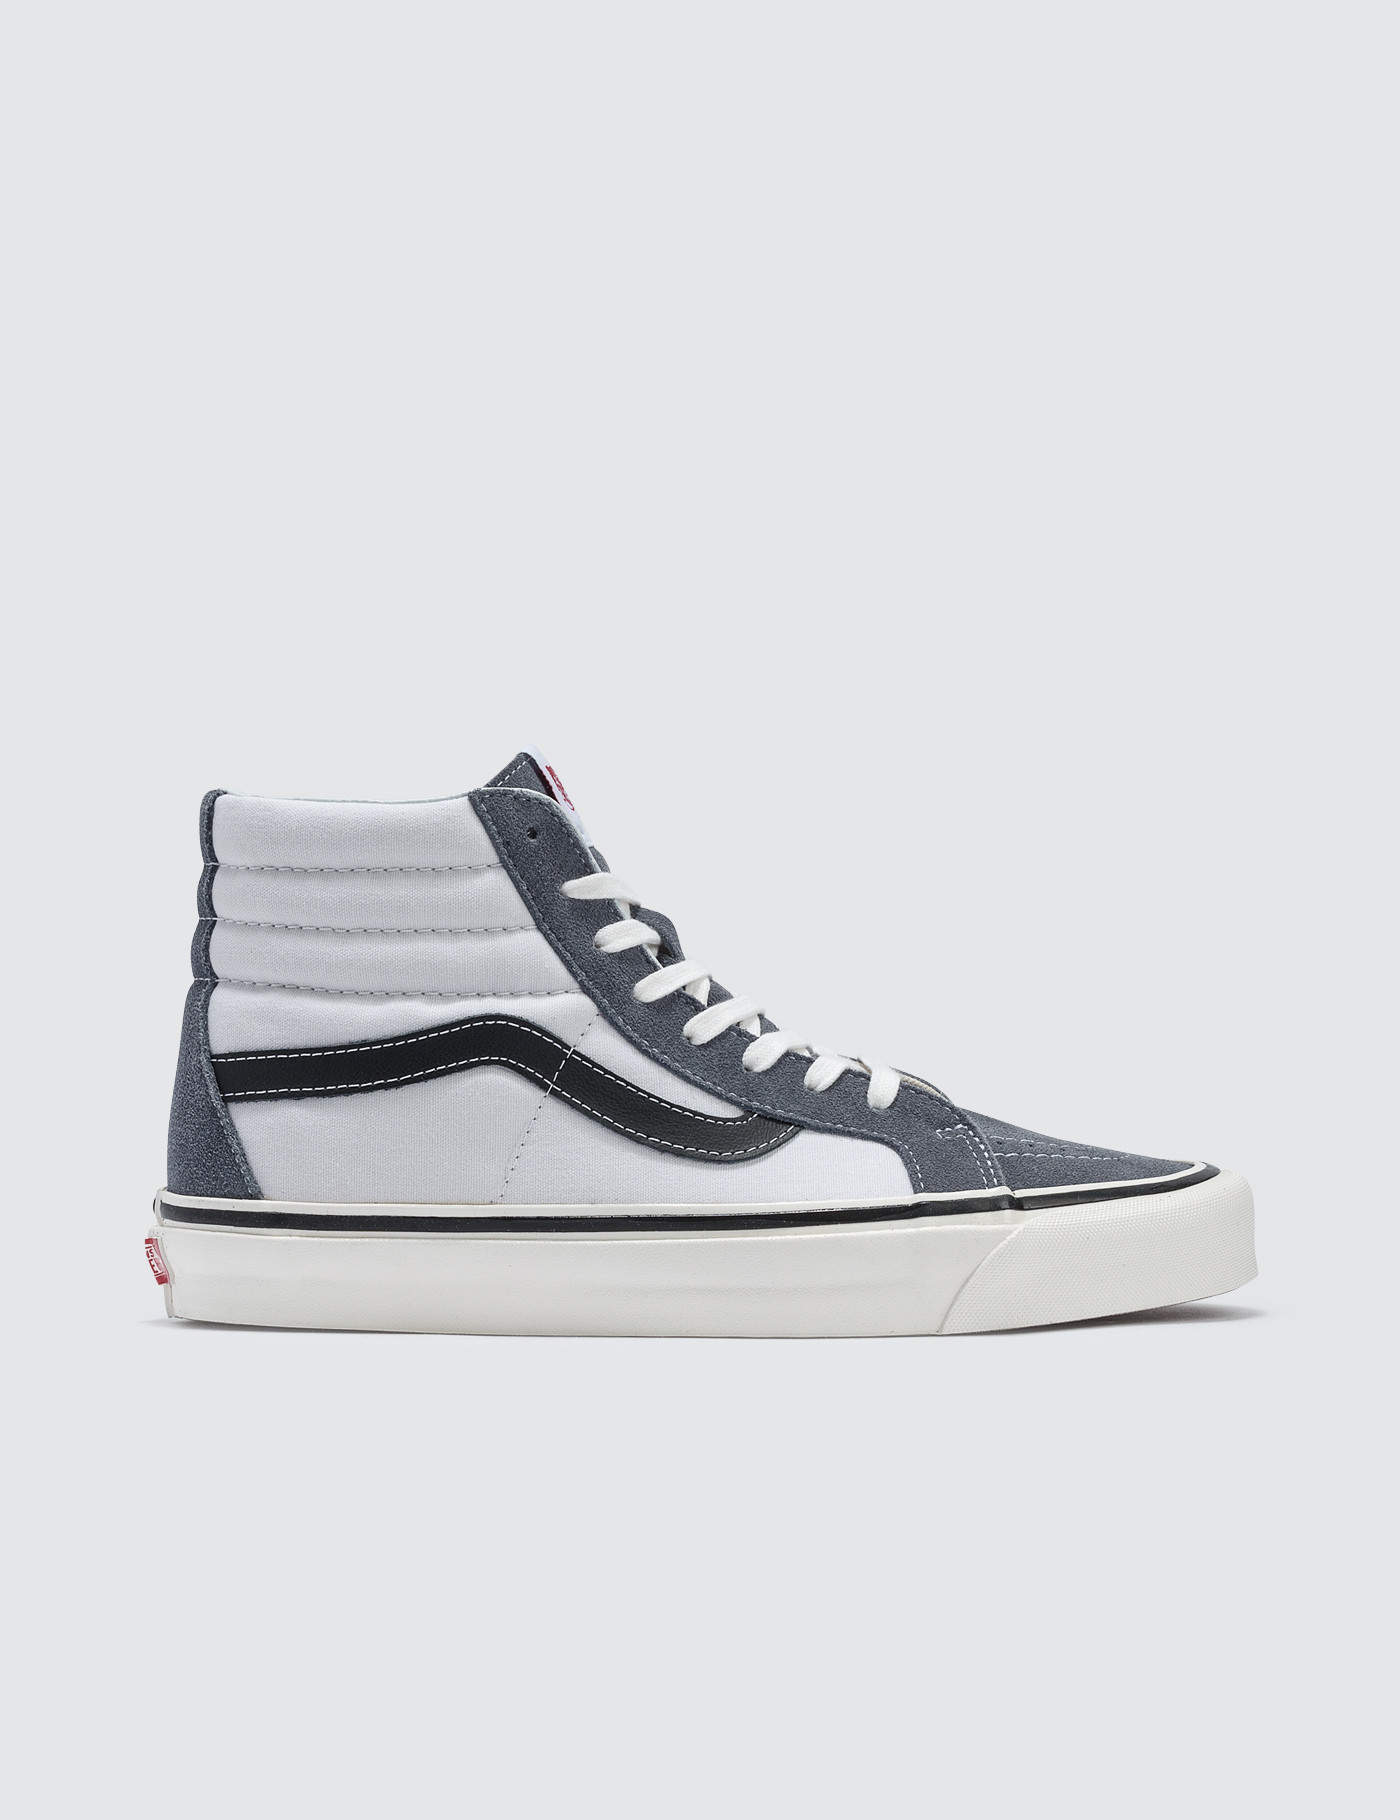 044f3fbd76 Buy Original Vans Sk8-Hi 38 DX at Indonesia